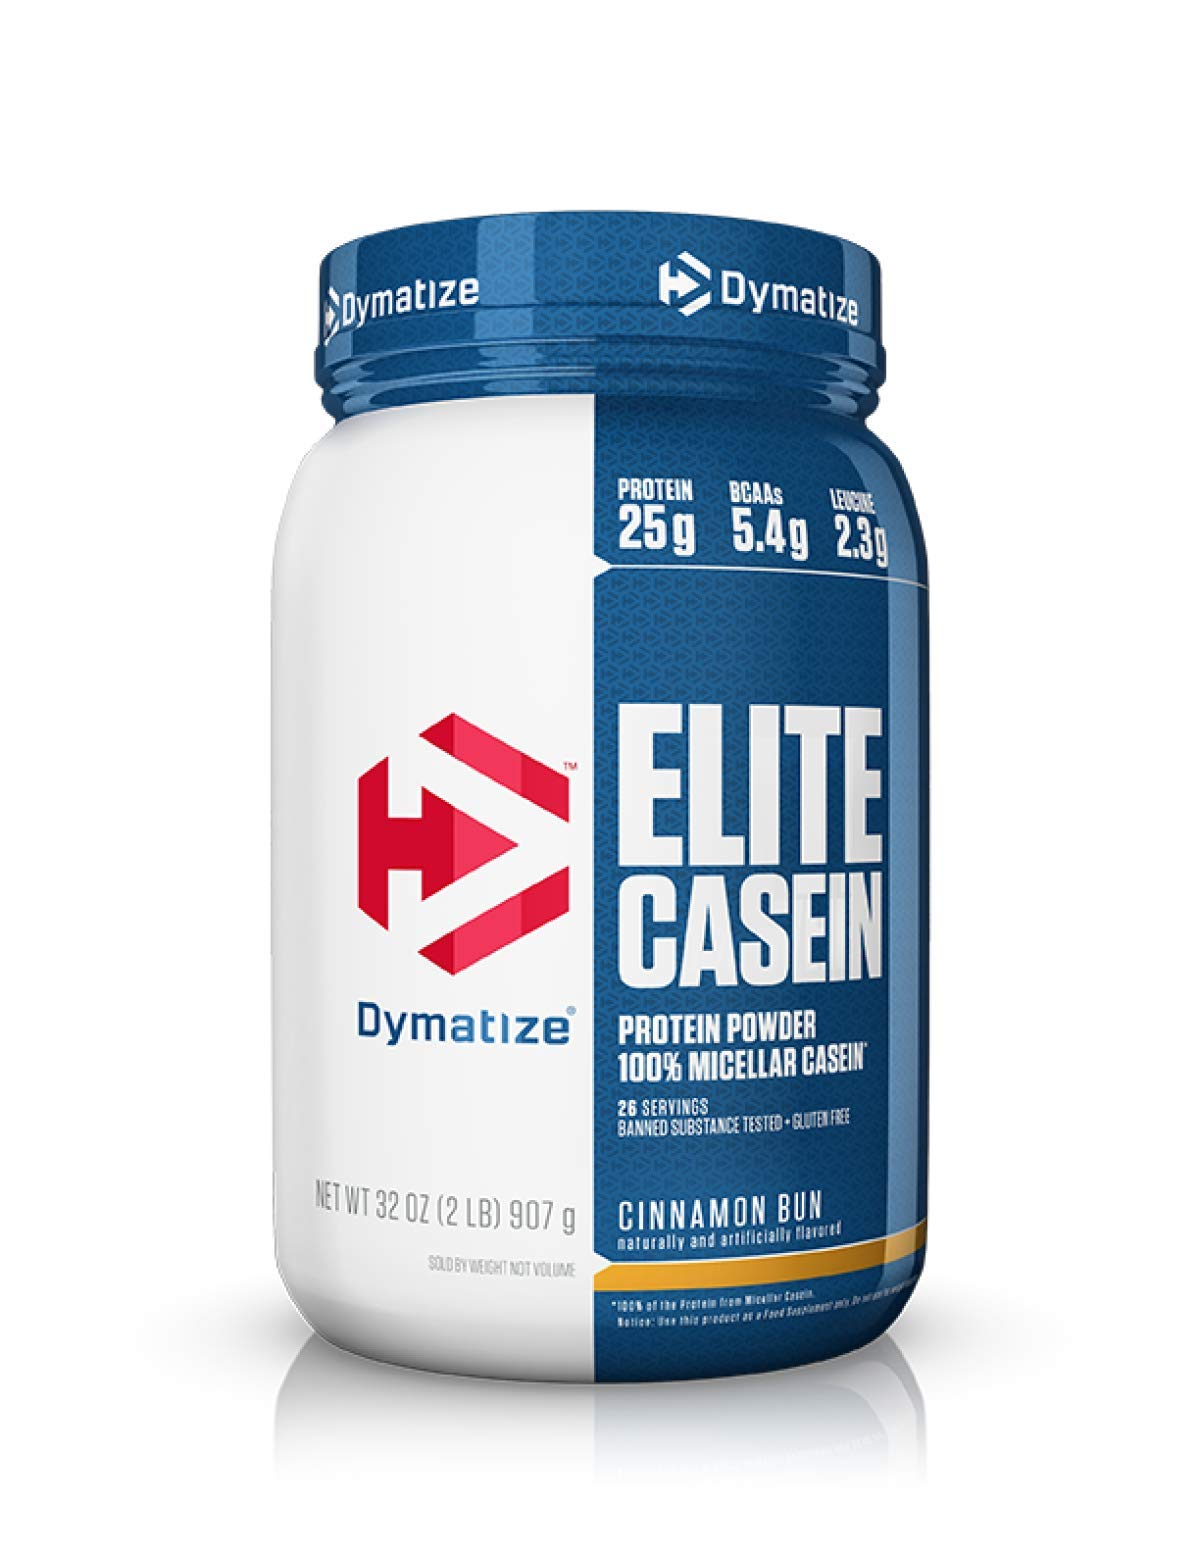 Dymatize Elite 100% Micellar Casein Slow Absorbing Protein Powder with Muscle Building Amino Acids, Perfect For Overnight Recovery, Slow Digesting, Cinnamon Bun, 2 lbs by Dymatize